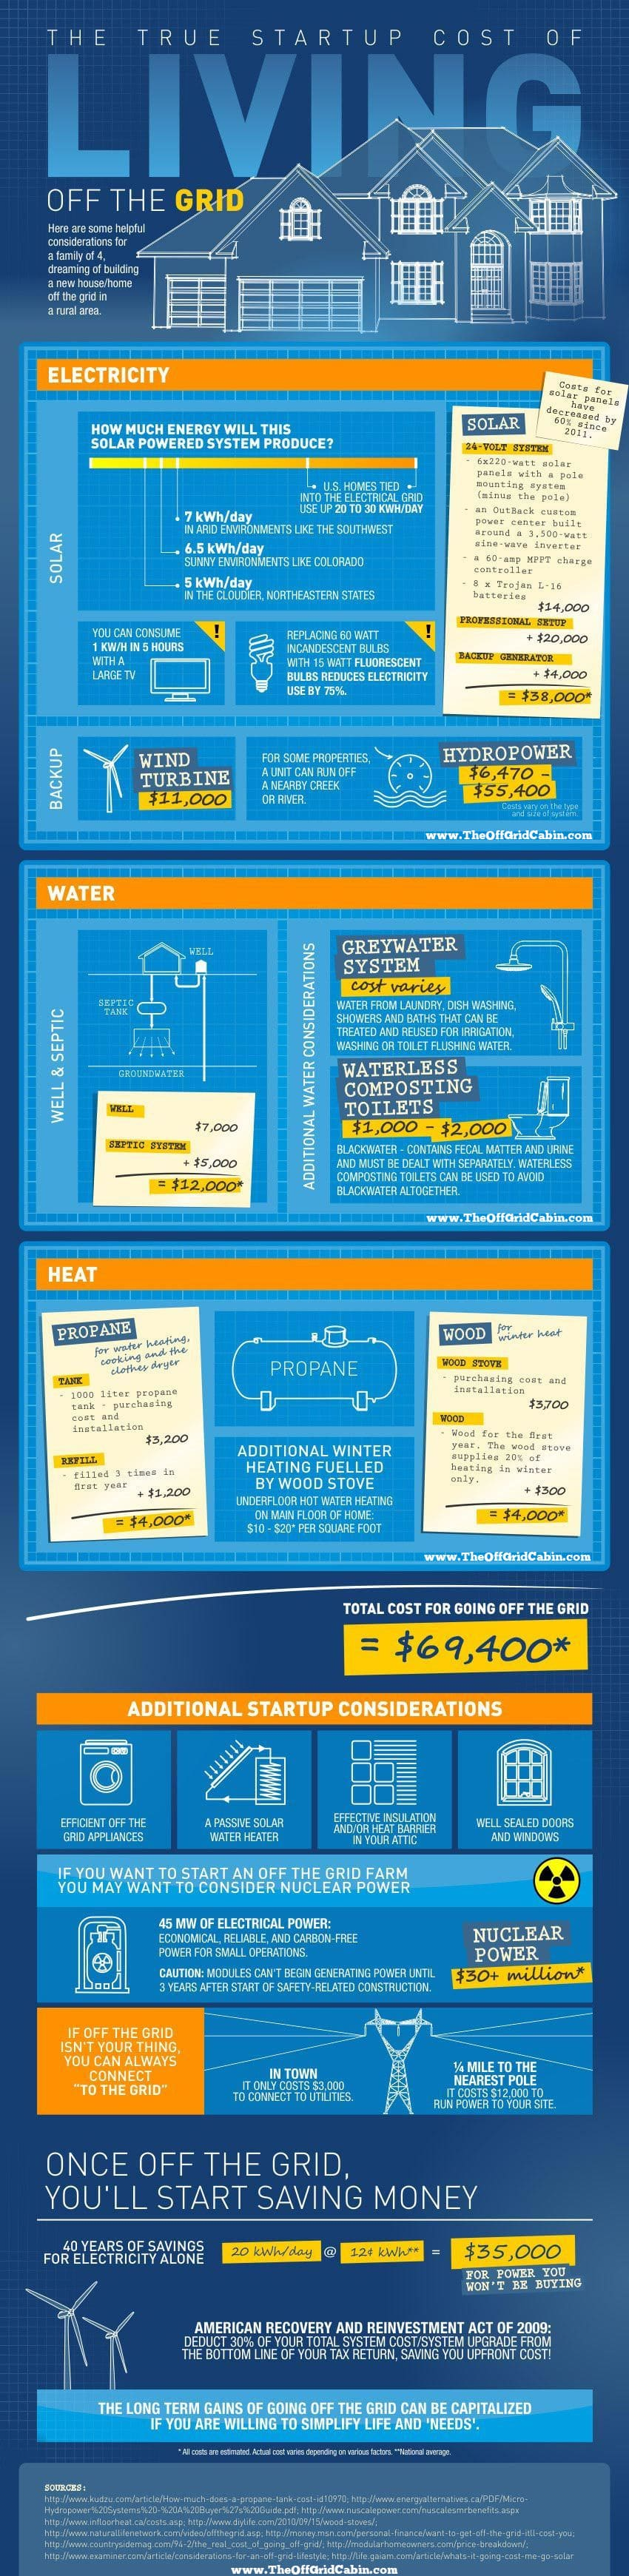 The True Startup Cost Of Living Off The Grid Infographic